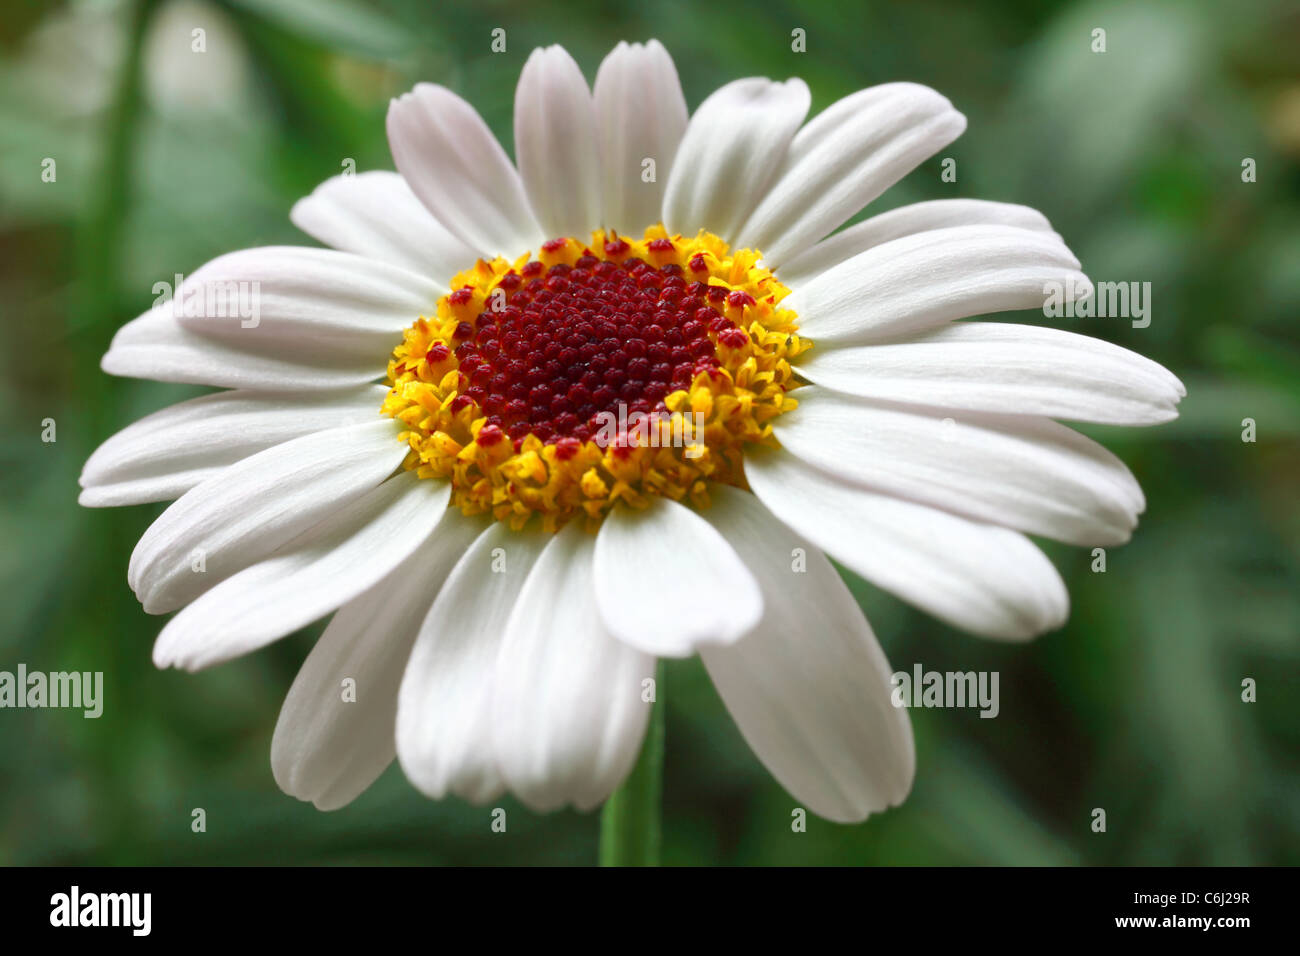 Moroccan Daisy - Stock Image